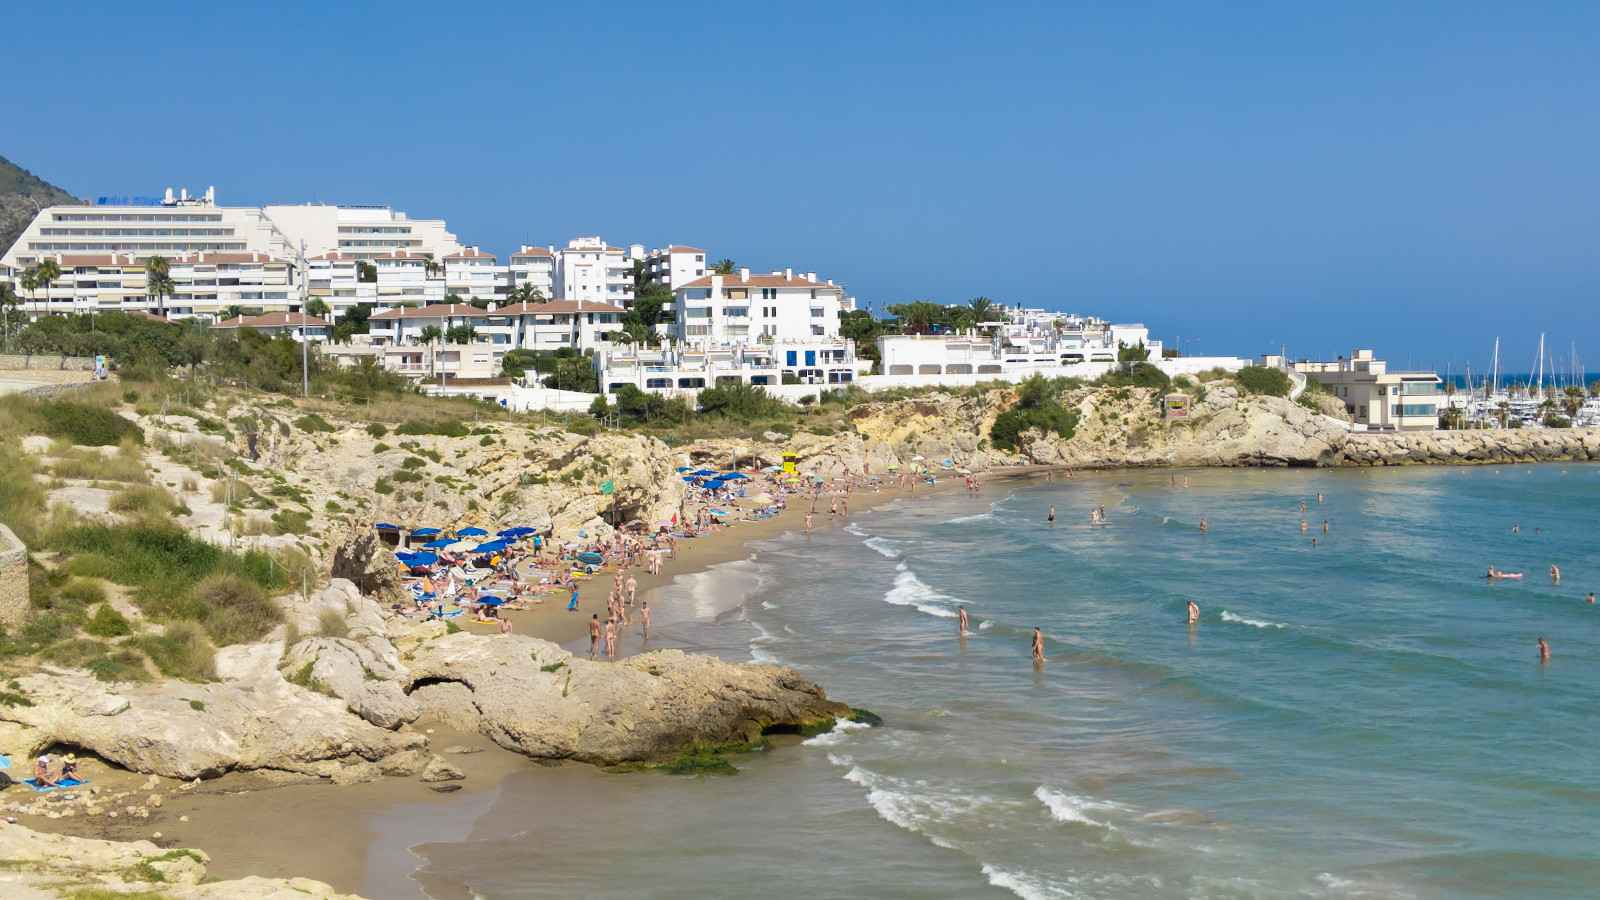 Balmins gay beach is a very popular hangout for LGBTQ travellers in Sitges